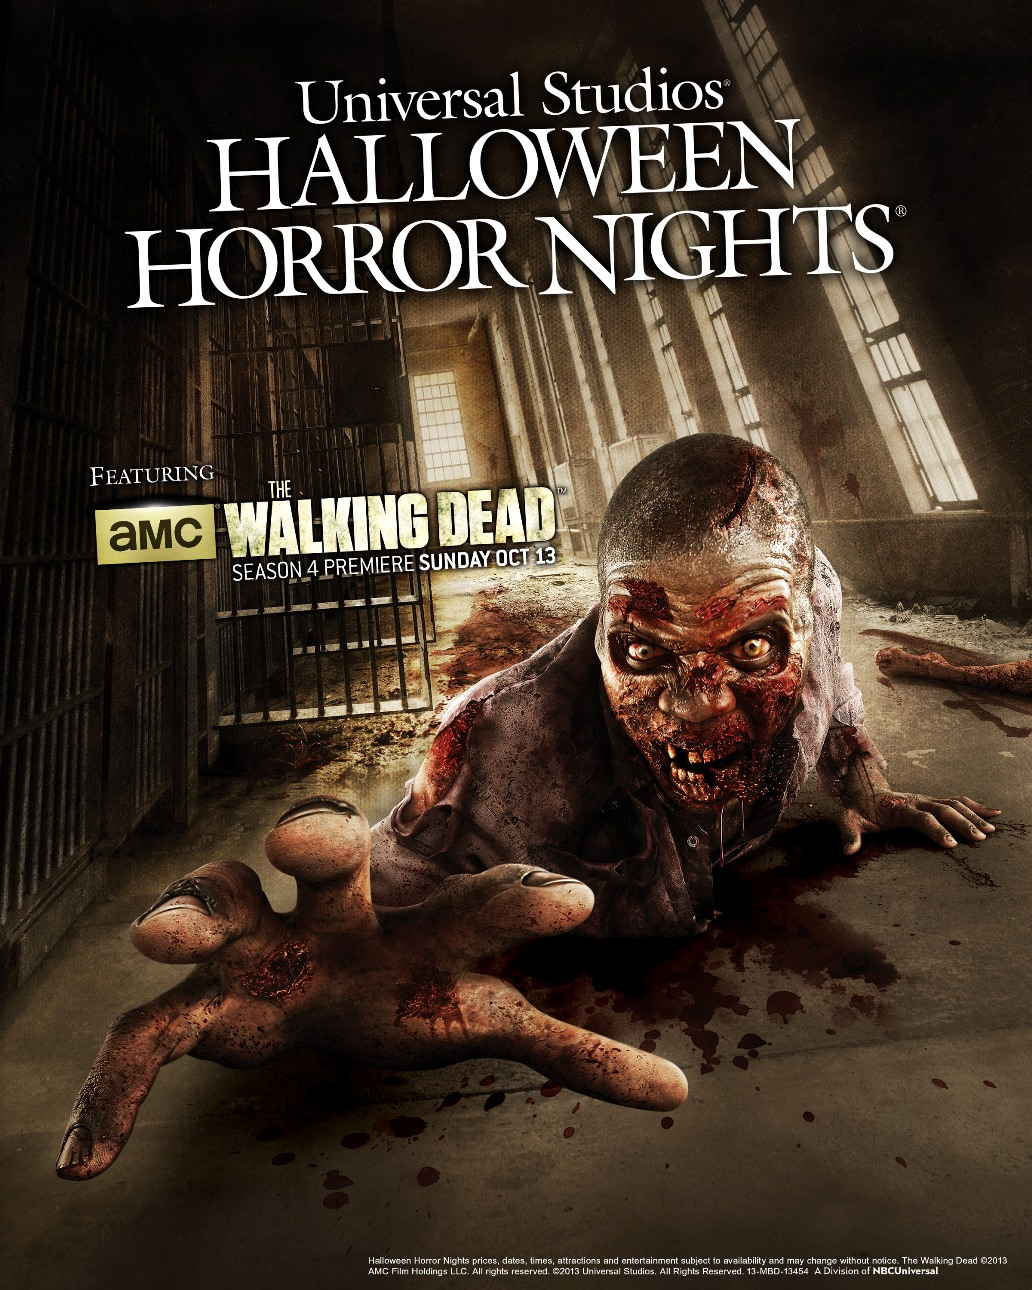 AMC's 'The Walking Dead' to Return to Halloween Horror Nights 23